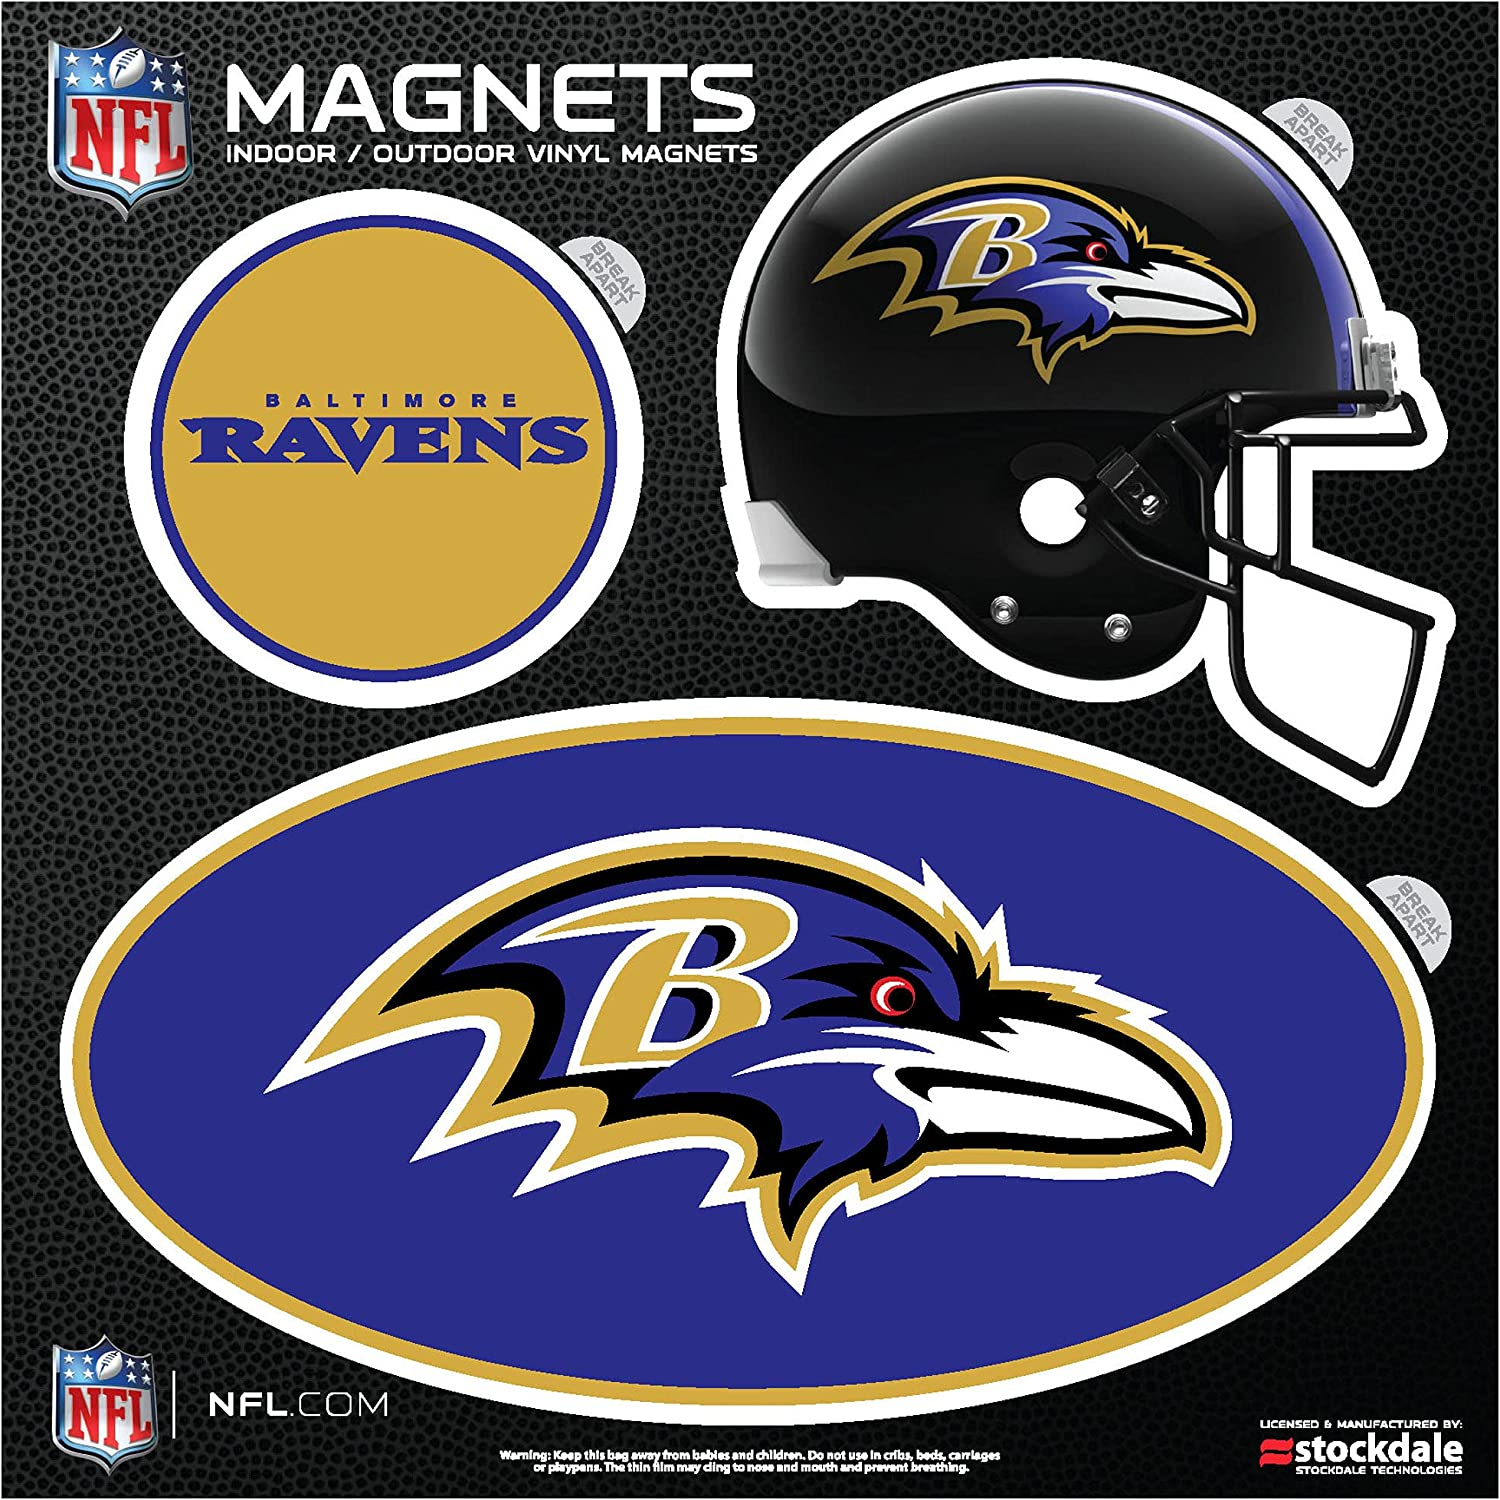 Max 57% OFF Limited time for free shipping Stockdale Baltimore Ravens Indoor Set Outdoor 3-Pack Magnet